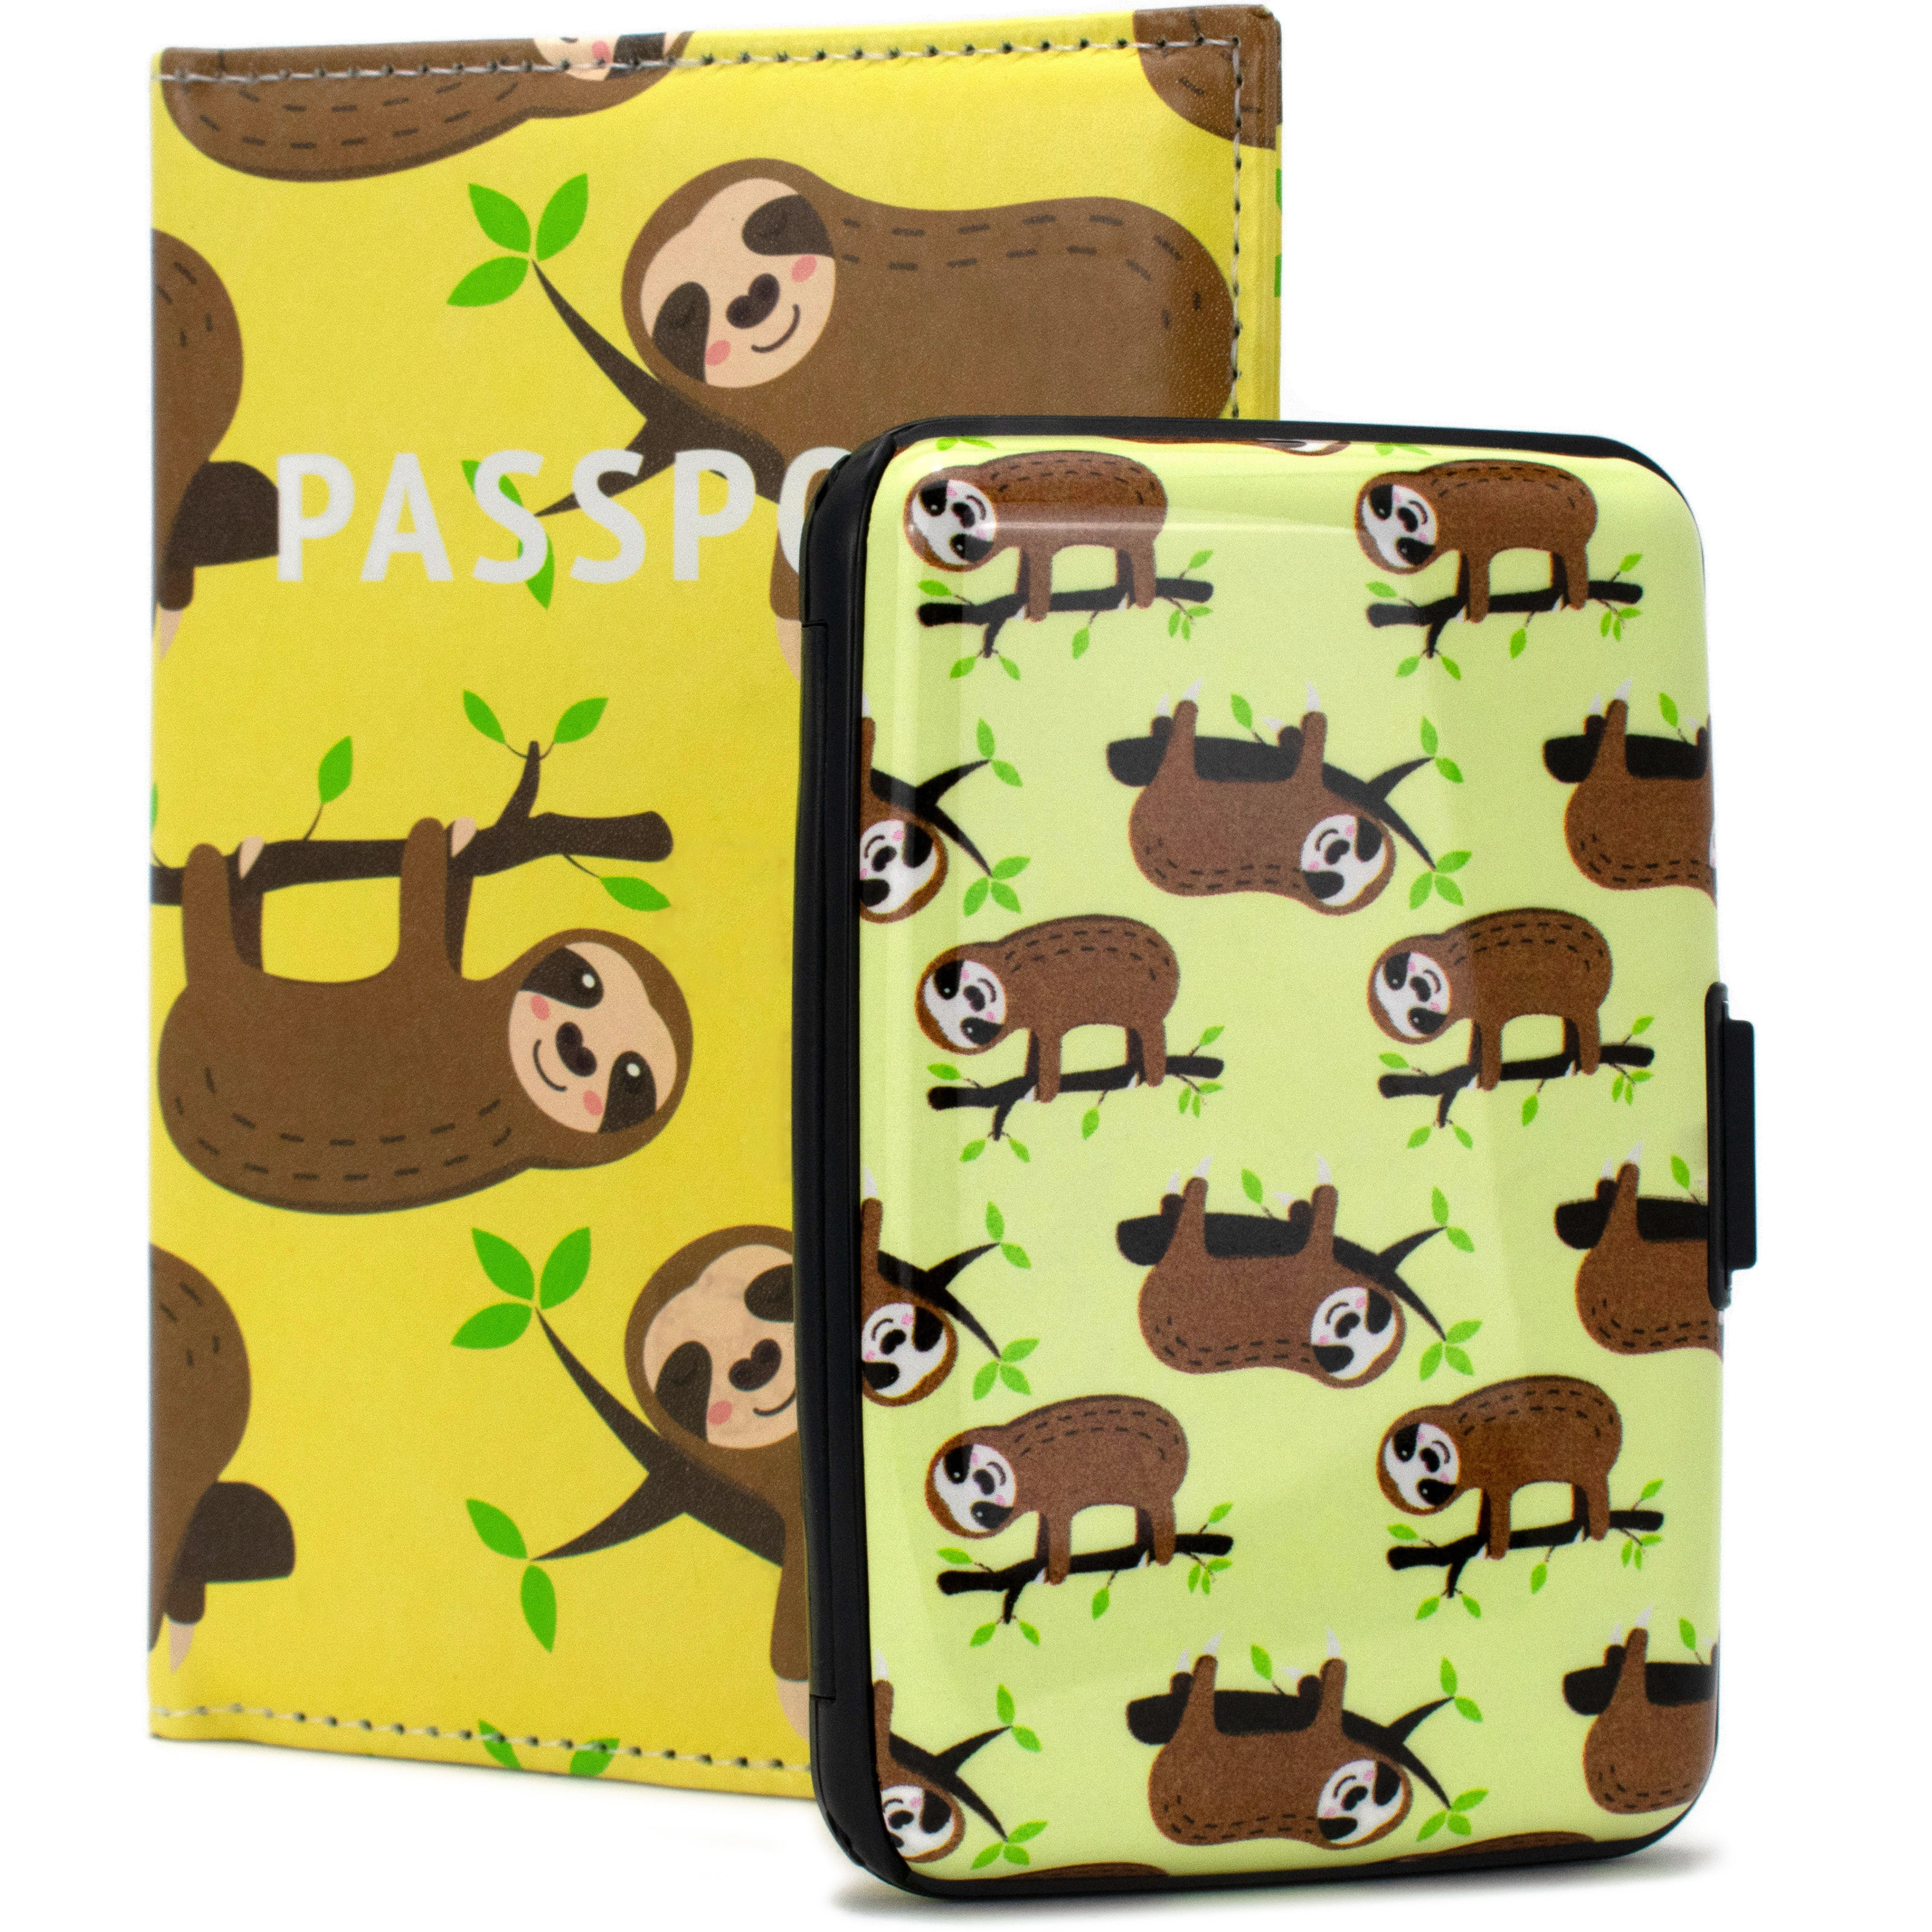 RFID Wallet & Passport Cover Set - Happy Sloths - Travellty